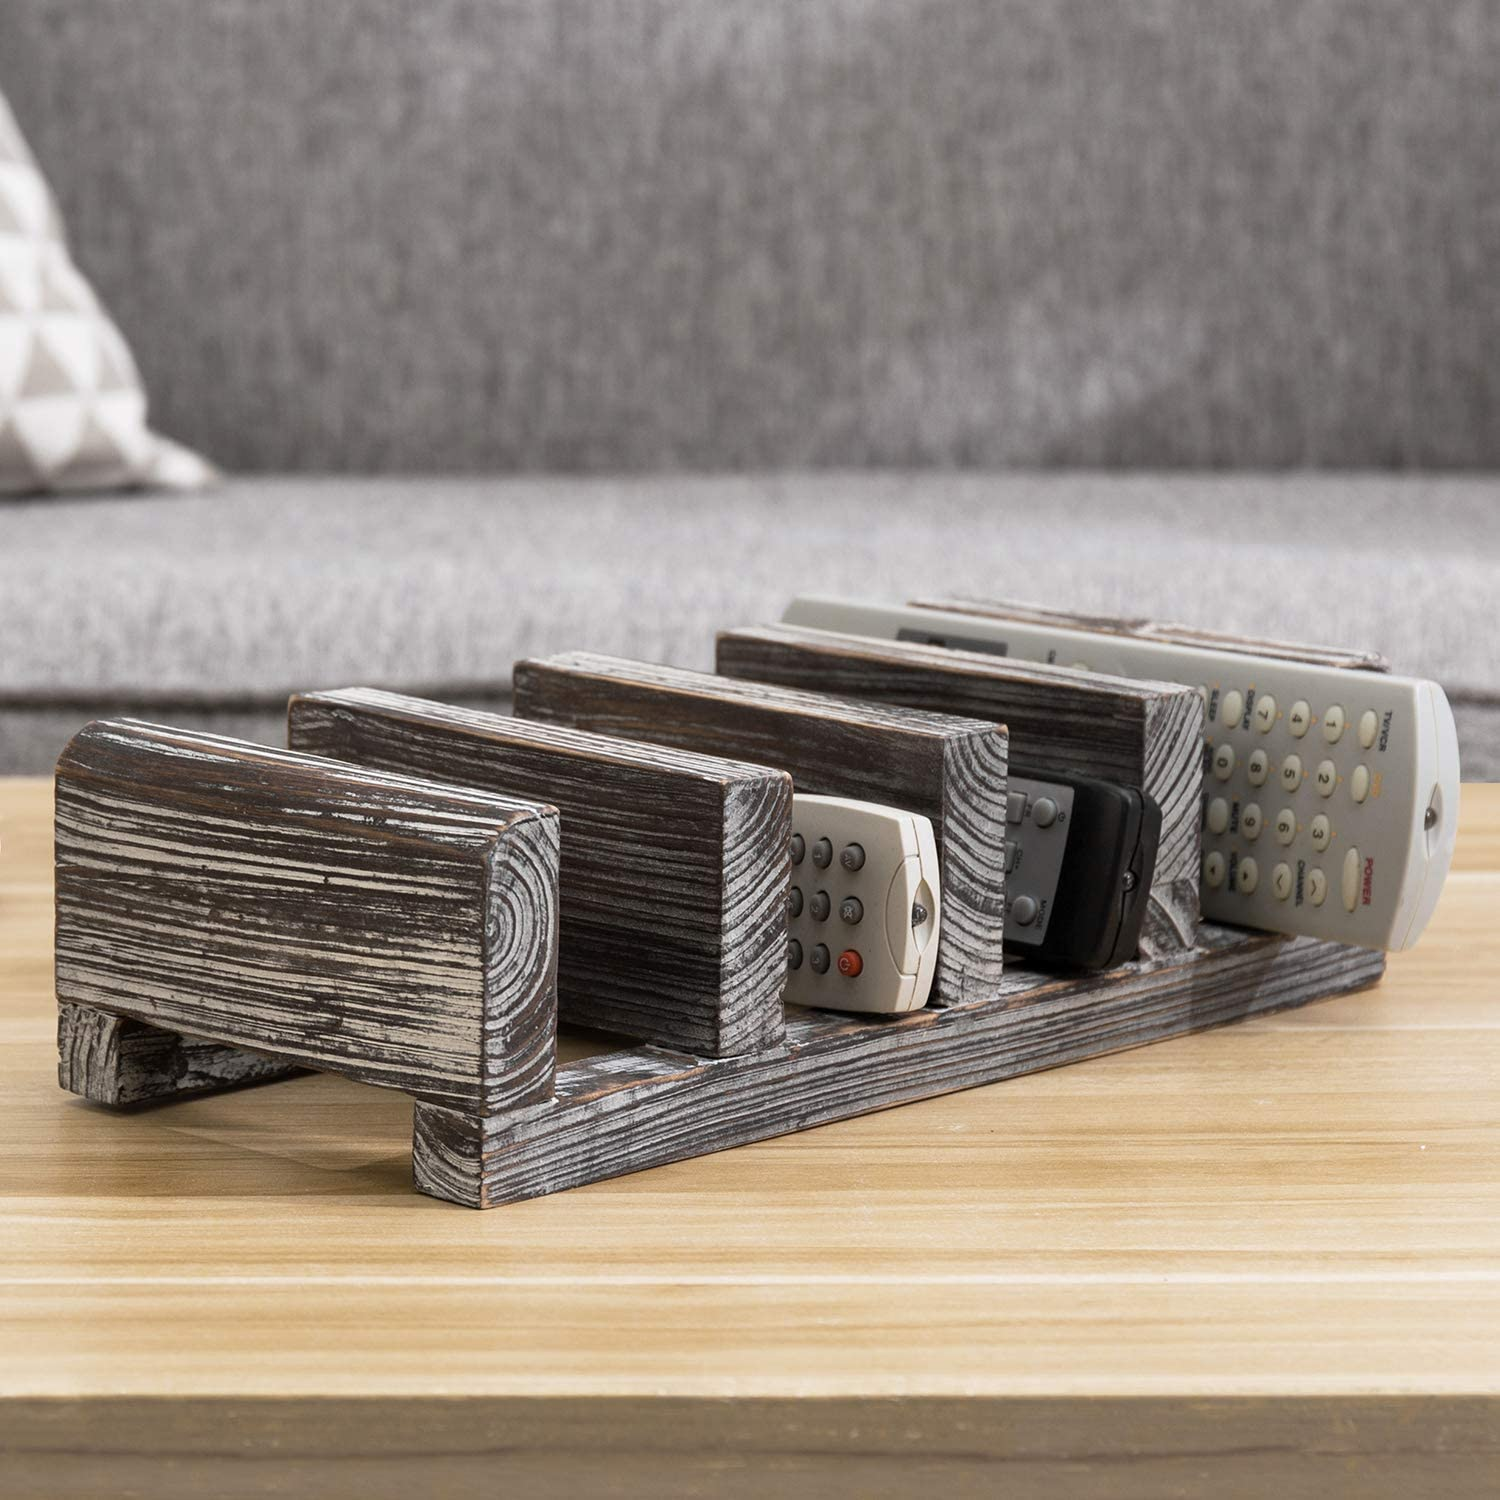 MyGift 4-Slot Torched Wood ! Super beauty product restock quality top! Tabletop Control Ultra-Cheap Deals Storage Rack Remote